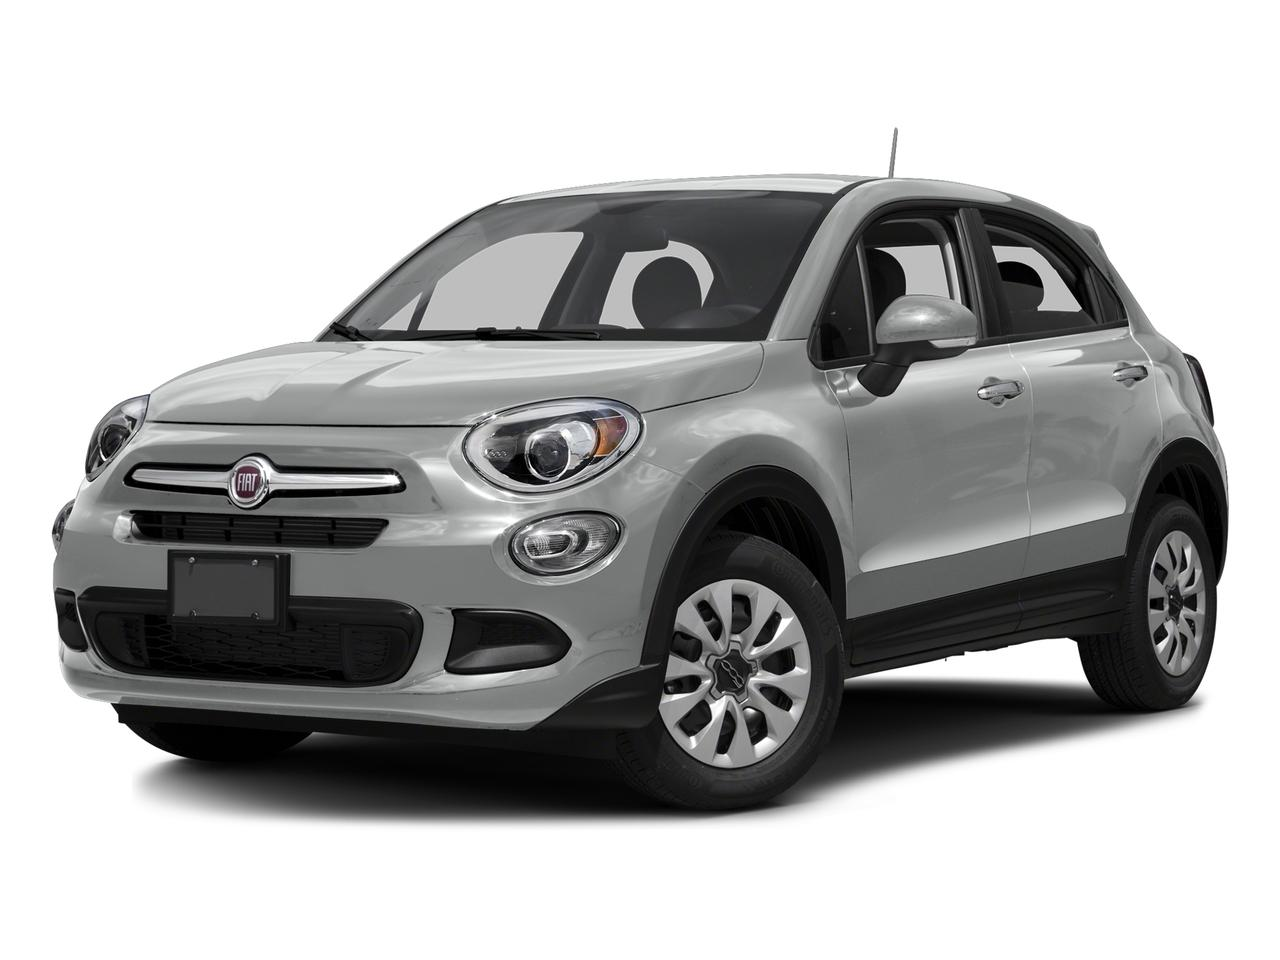 2016 FIAT 500X Vehicle Photo in Concord, NC 28027